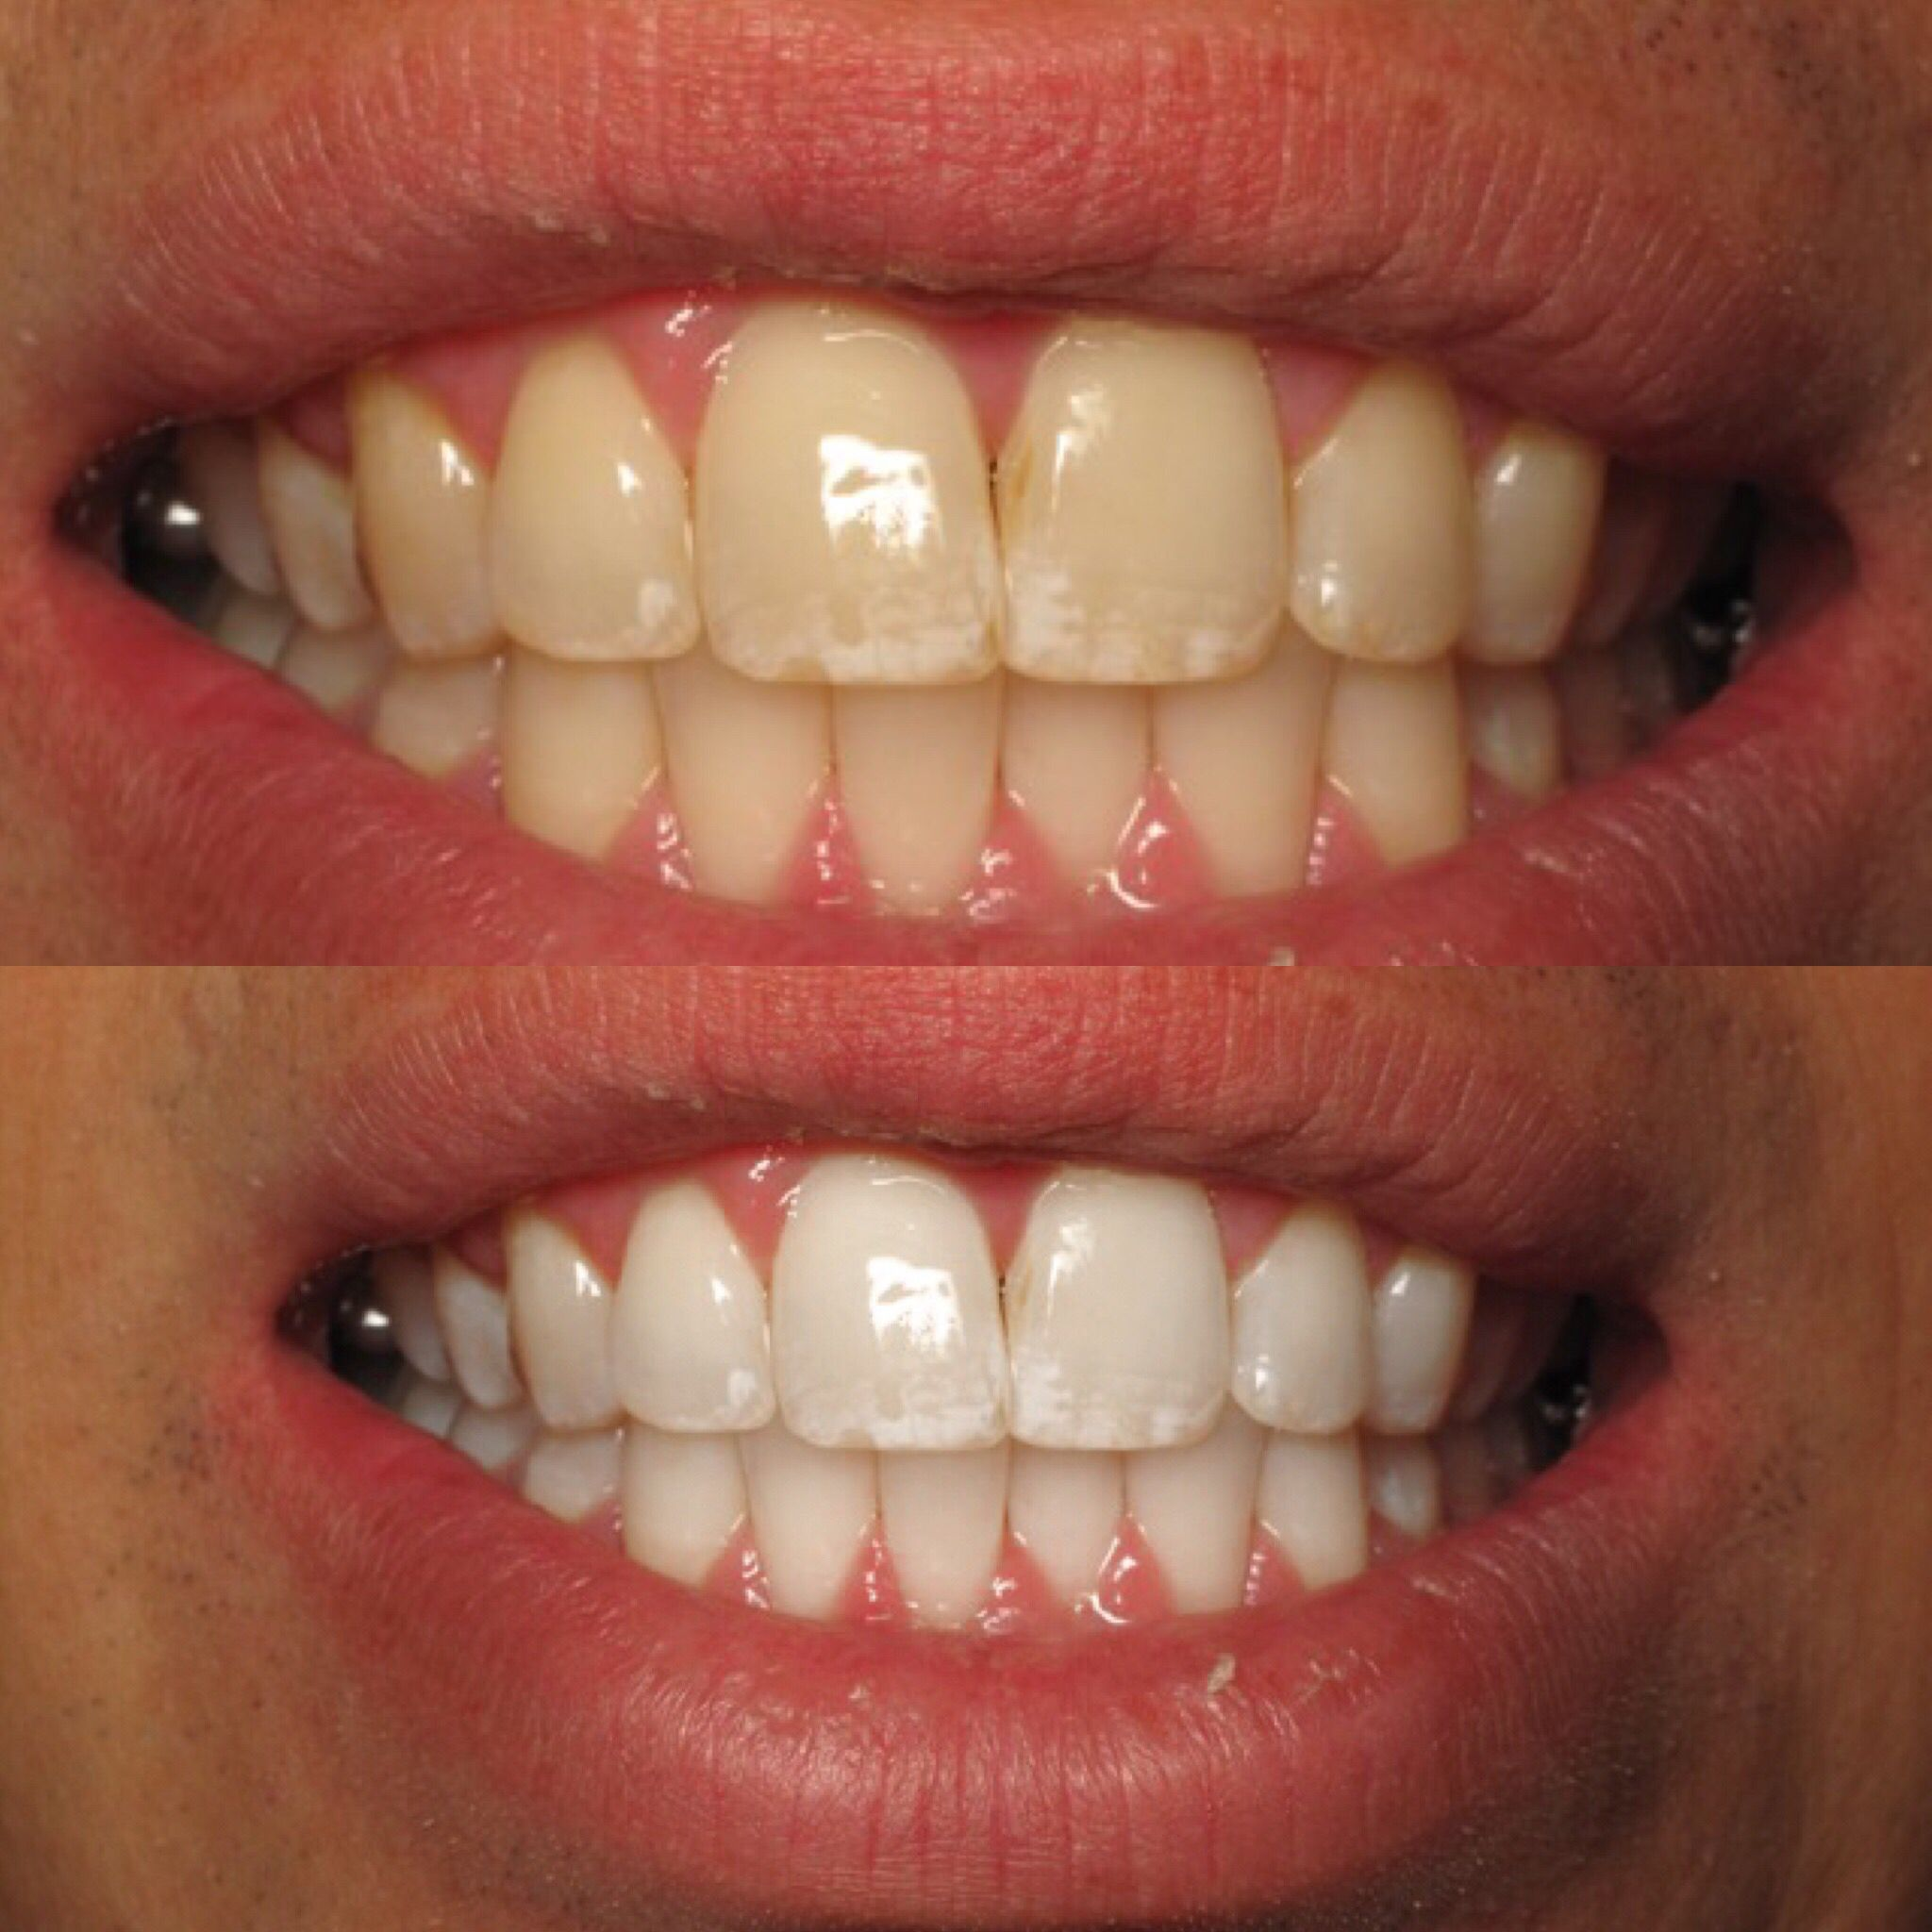 Colgate teeth whitening teeth whitening products pinterest teeth - White System No More Abrasive Treatments And You Do Not Have To Damage The Tooth Enamel Find This Pin And More On Teeth Whitening